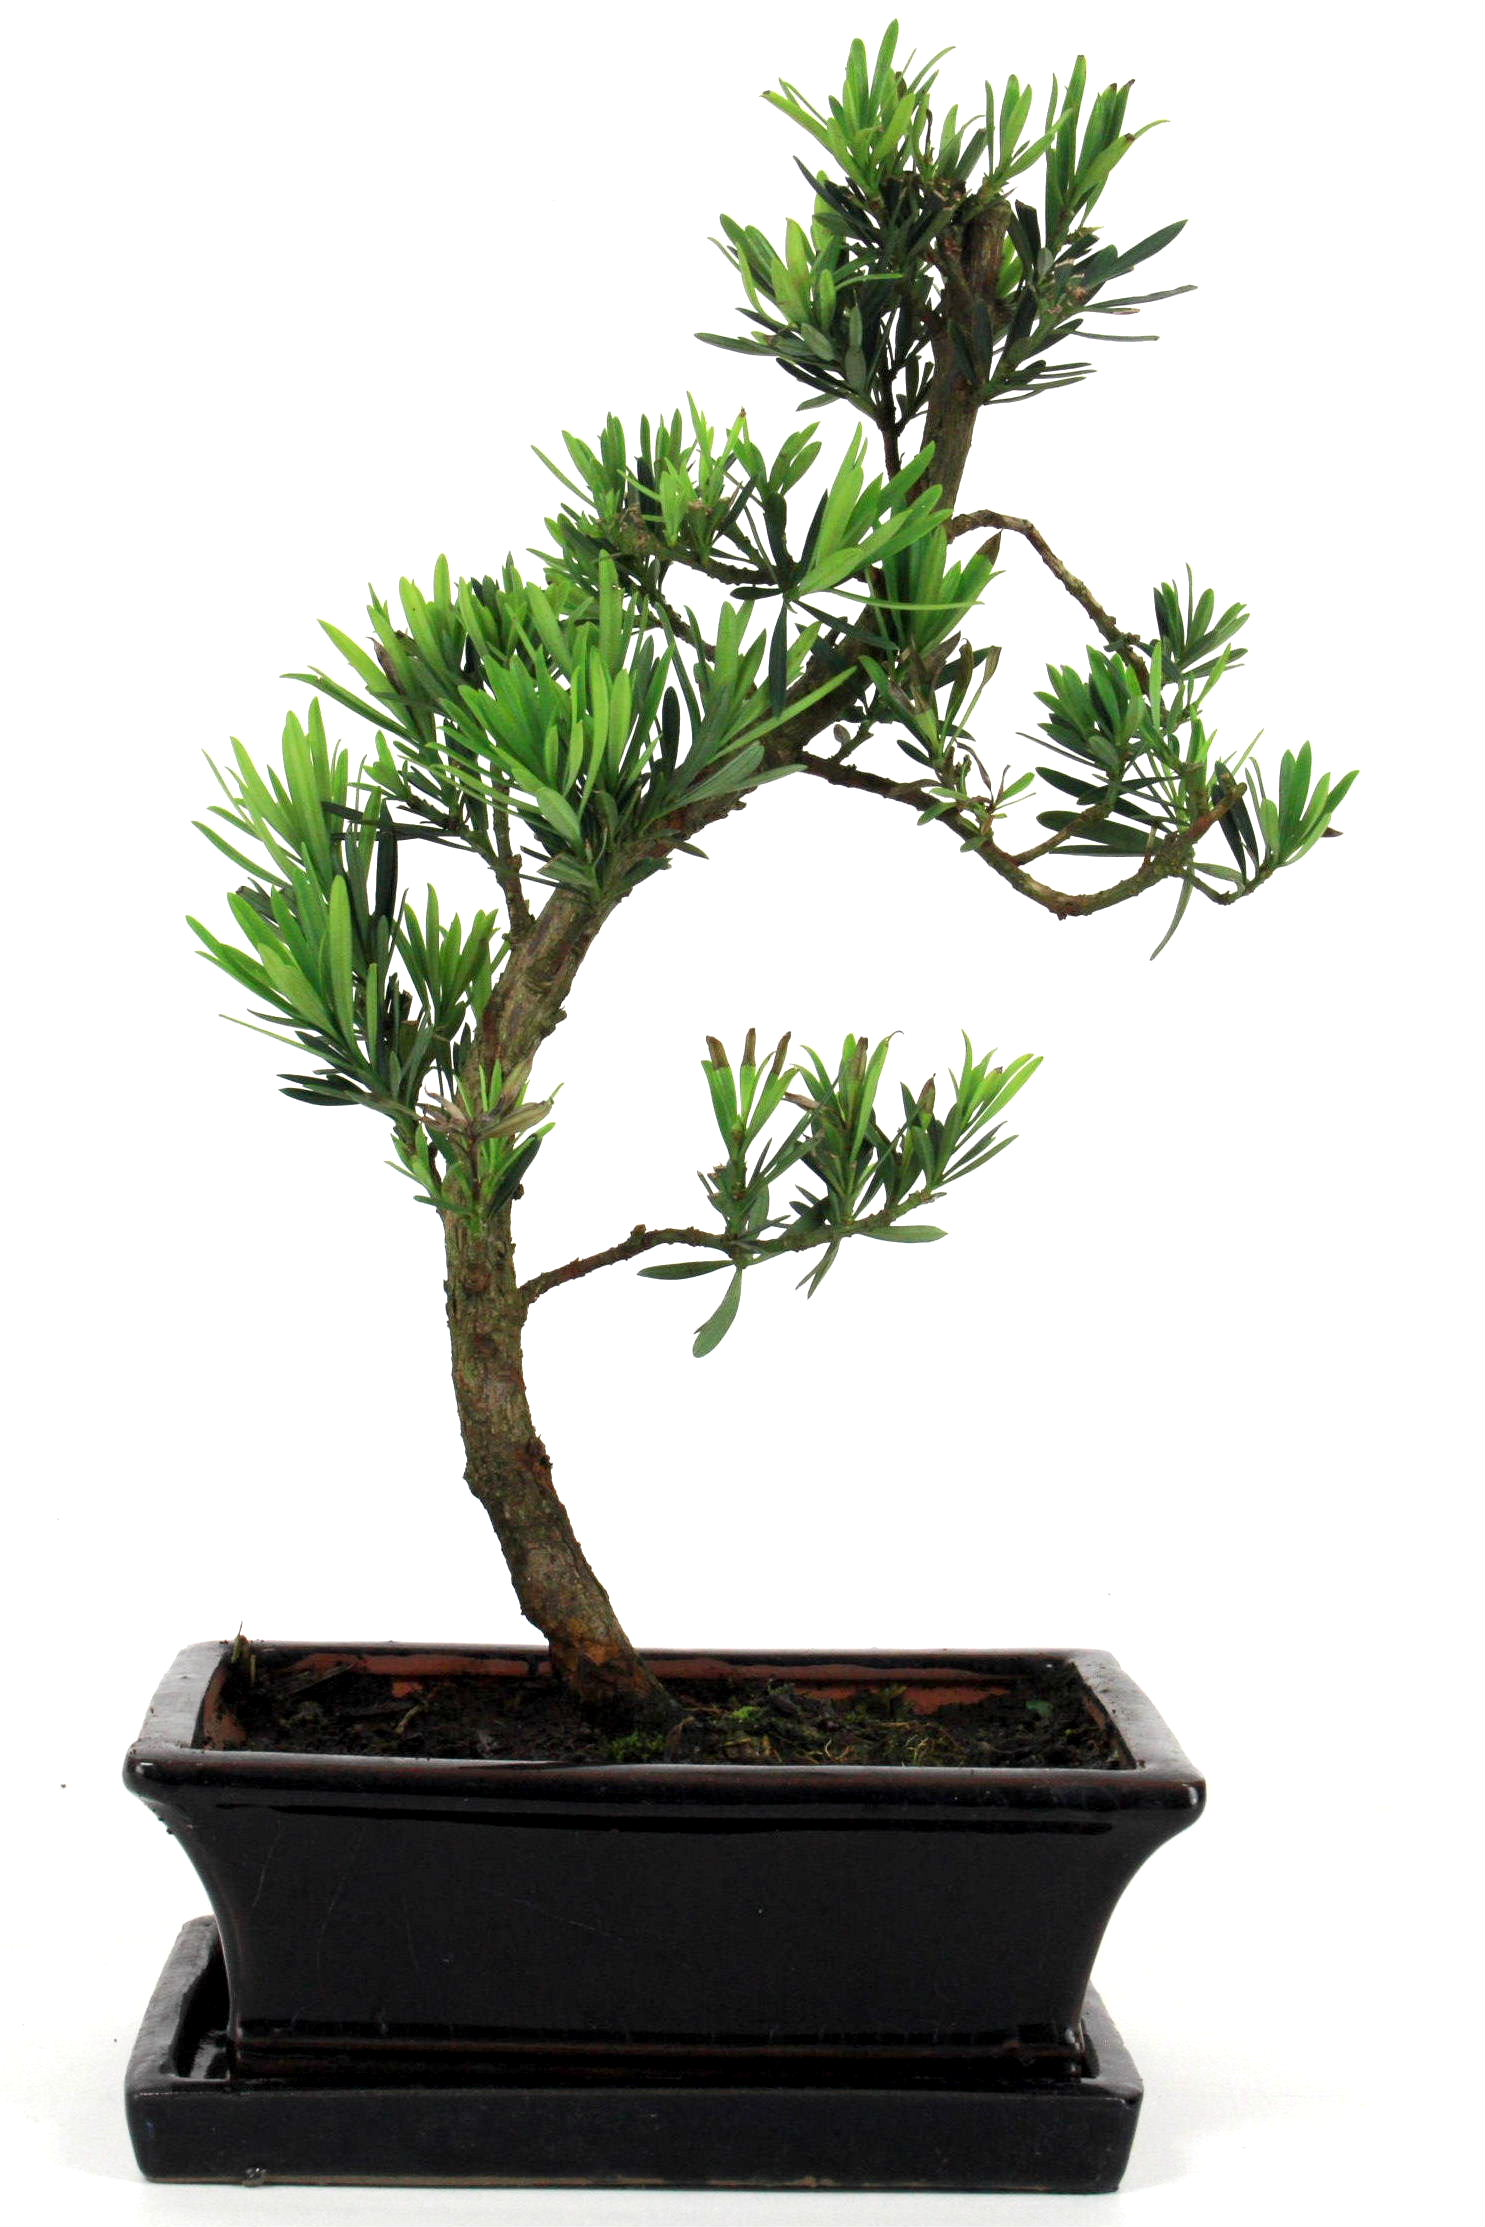 Steineibe bonsai 35 40 cm 1916 bei oyaki bonsai kaufen for Bonsai onlineshop